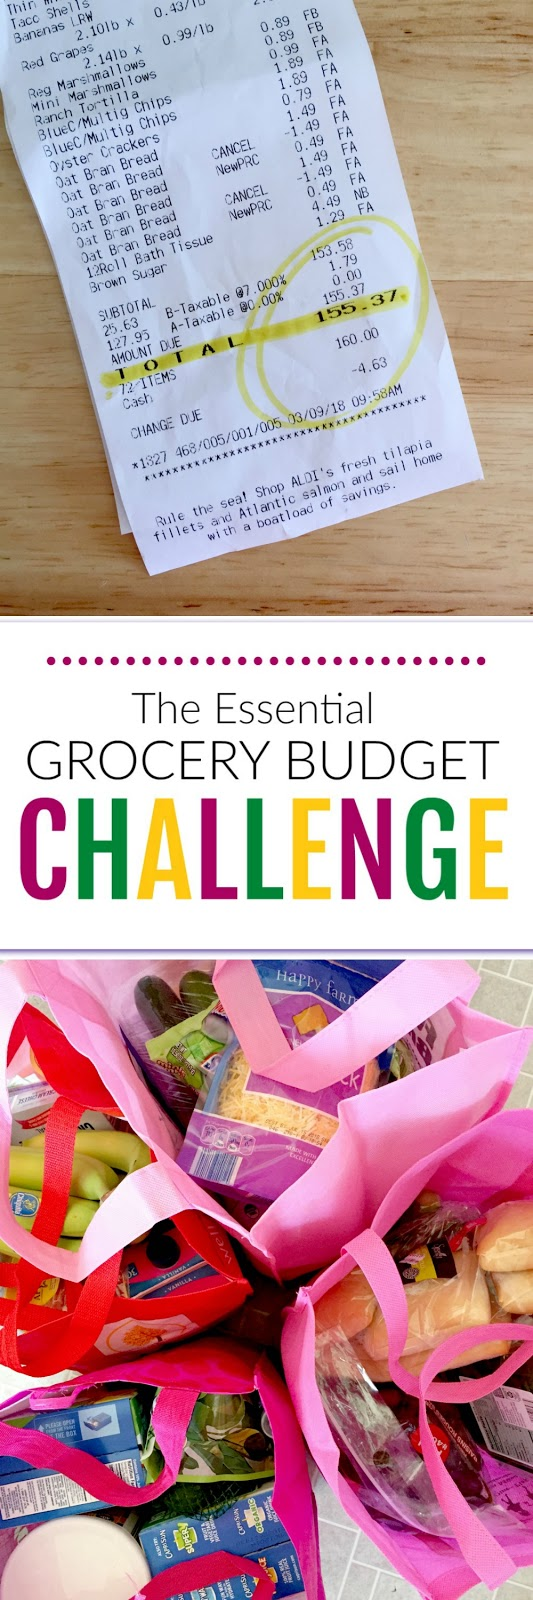 The Essential Grocery Budget Challenge: How I Cut My Bill By $100.  Tips, thoughts and ideas!  I slashed my grocery bill by $100 and I survived.  Easy ways to cut down on excess and get back to the basics. (sweetandsavoryfood.com)